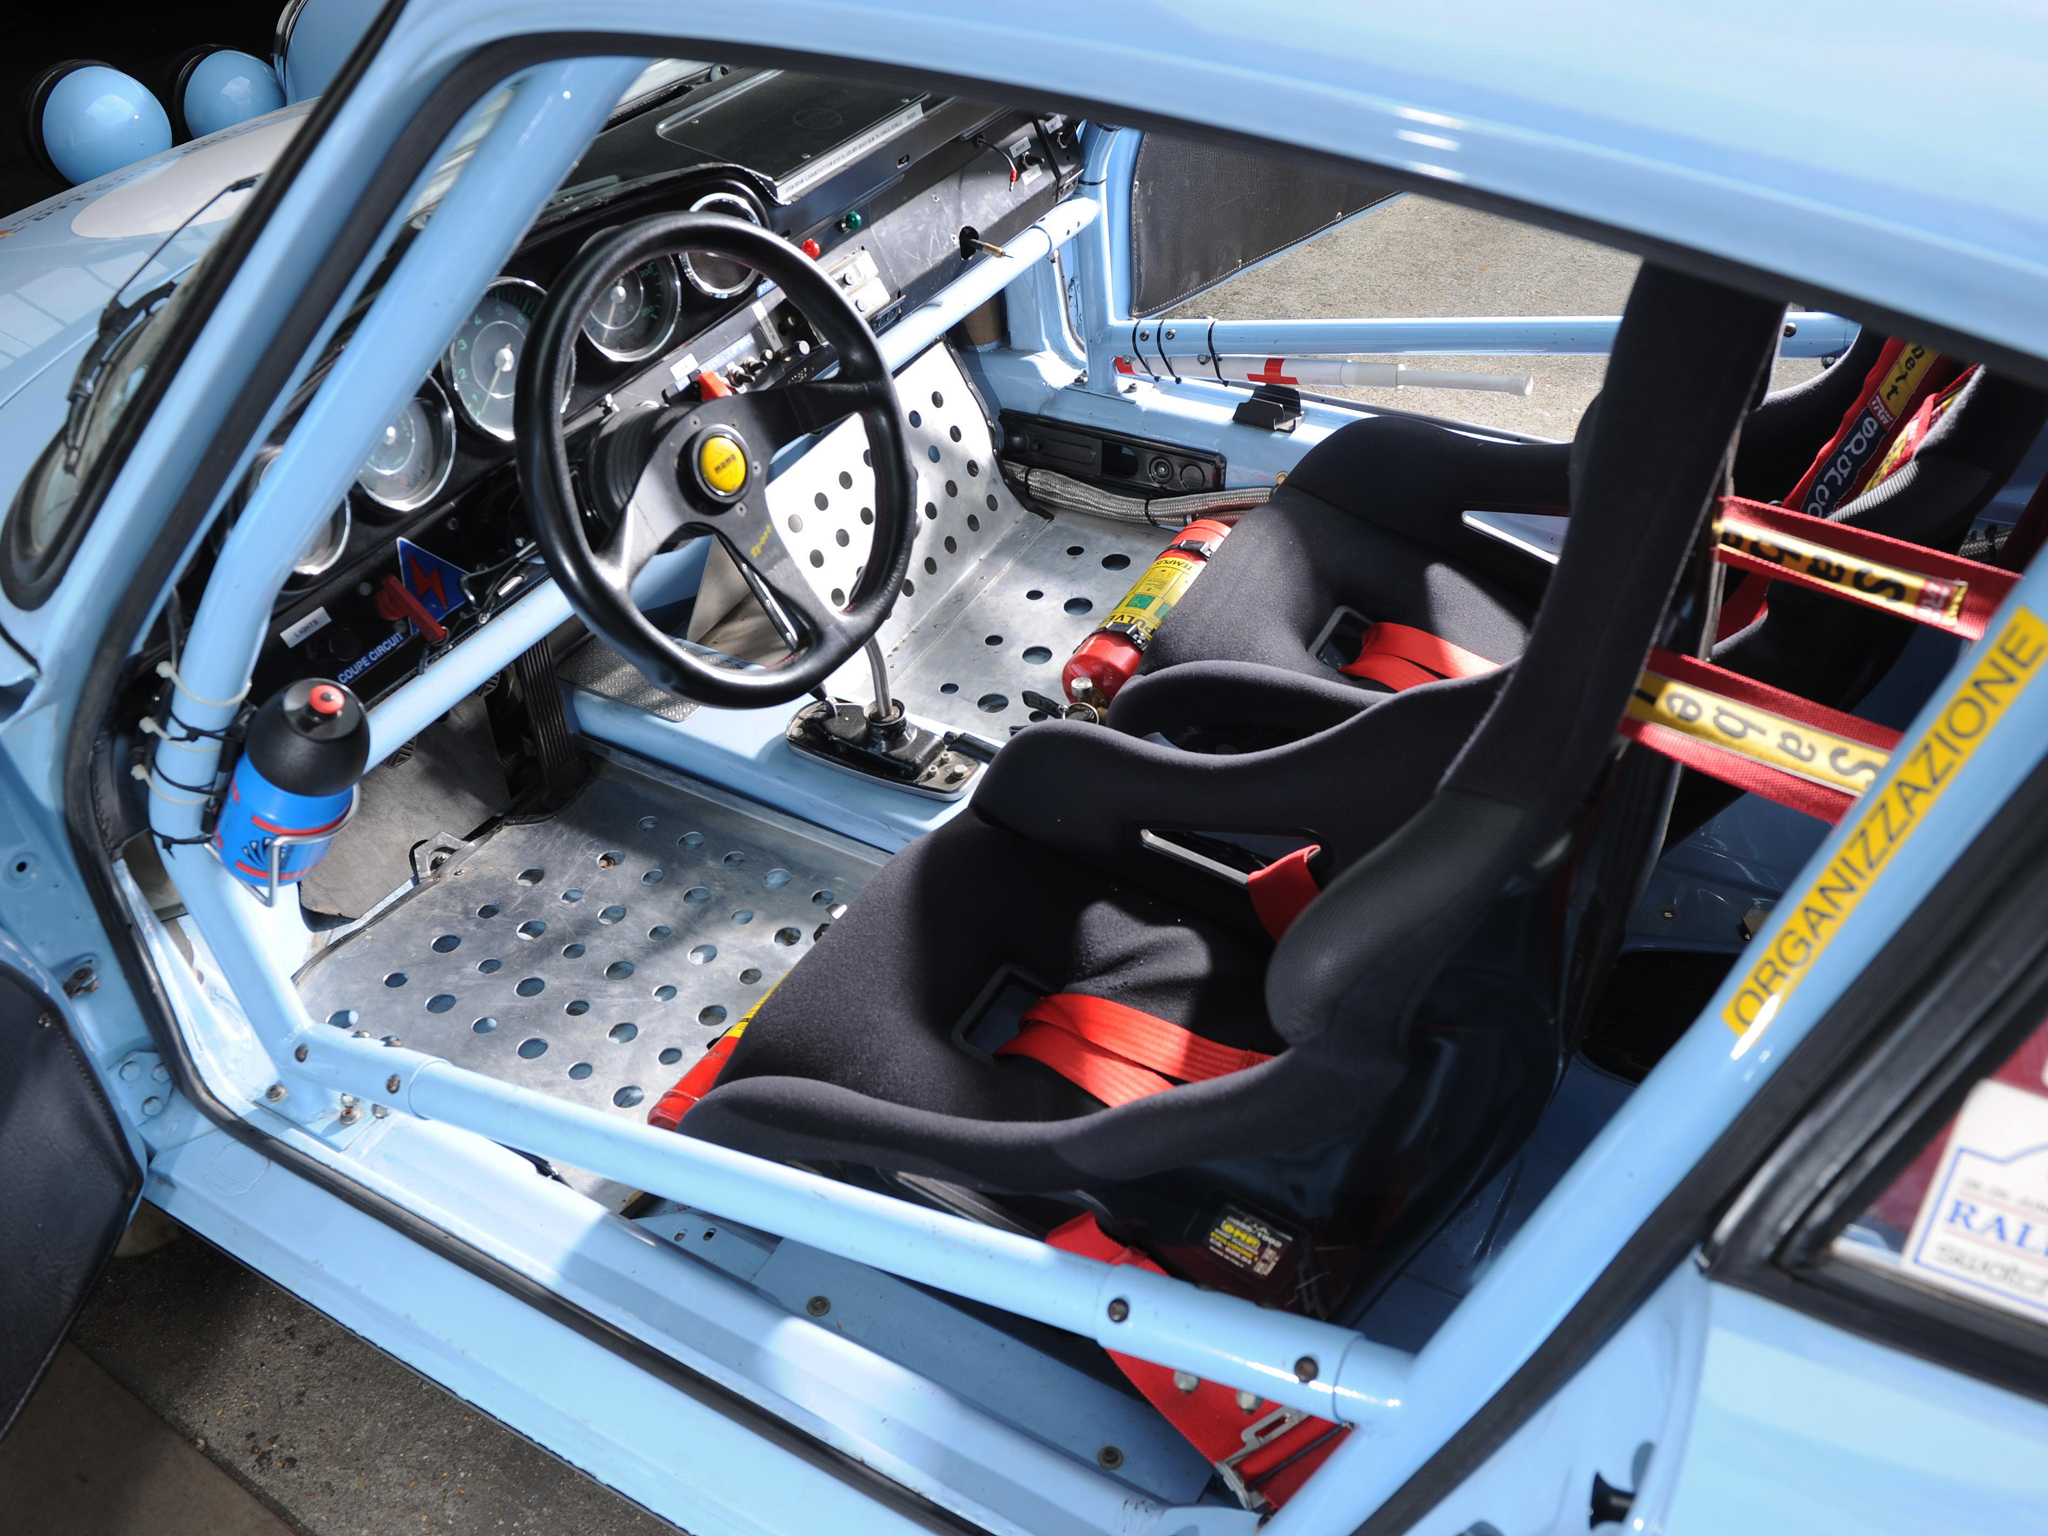 1996 porsche 911 swb fia rally 901 race racing interior wallpaper 2048x1536 134276 wallpaperup. Black Bedroom Furniture Sets. Home Design Ideas